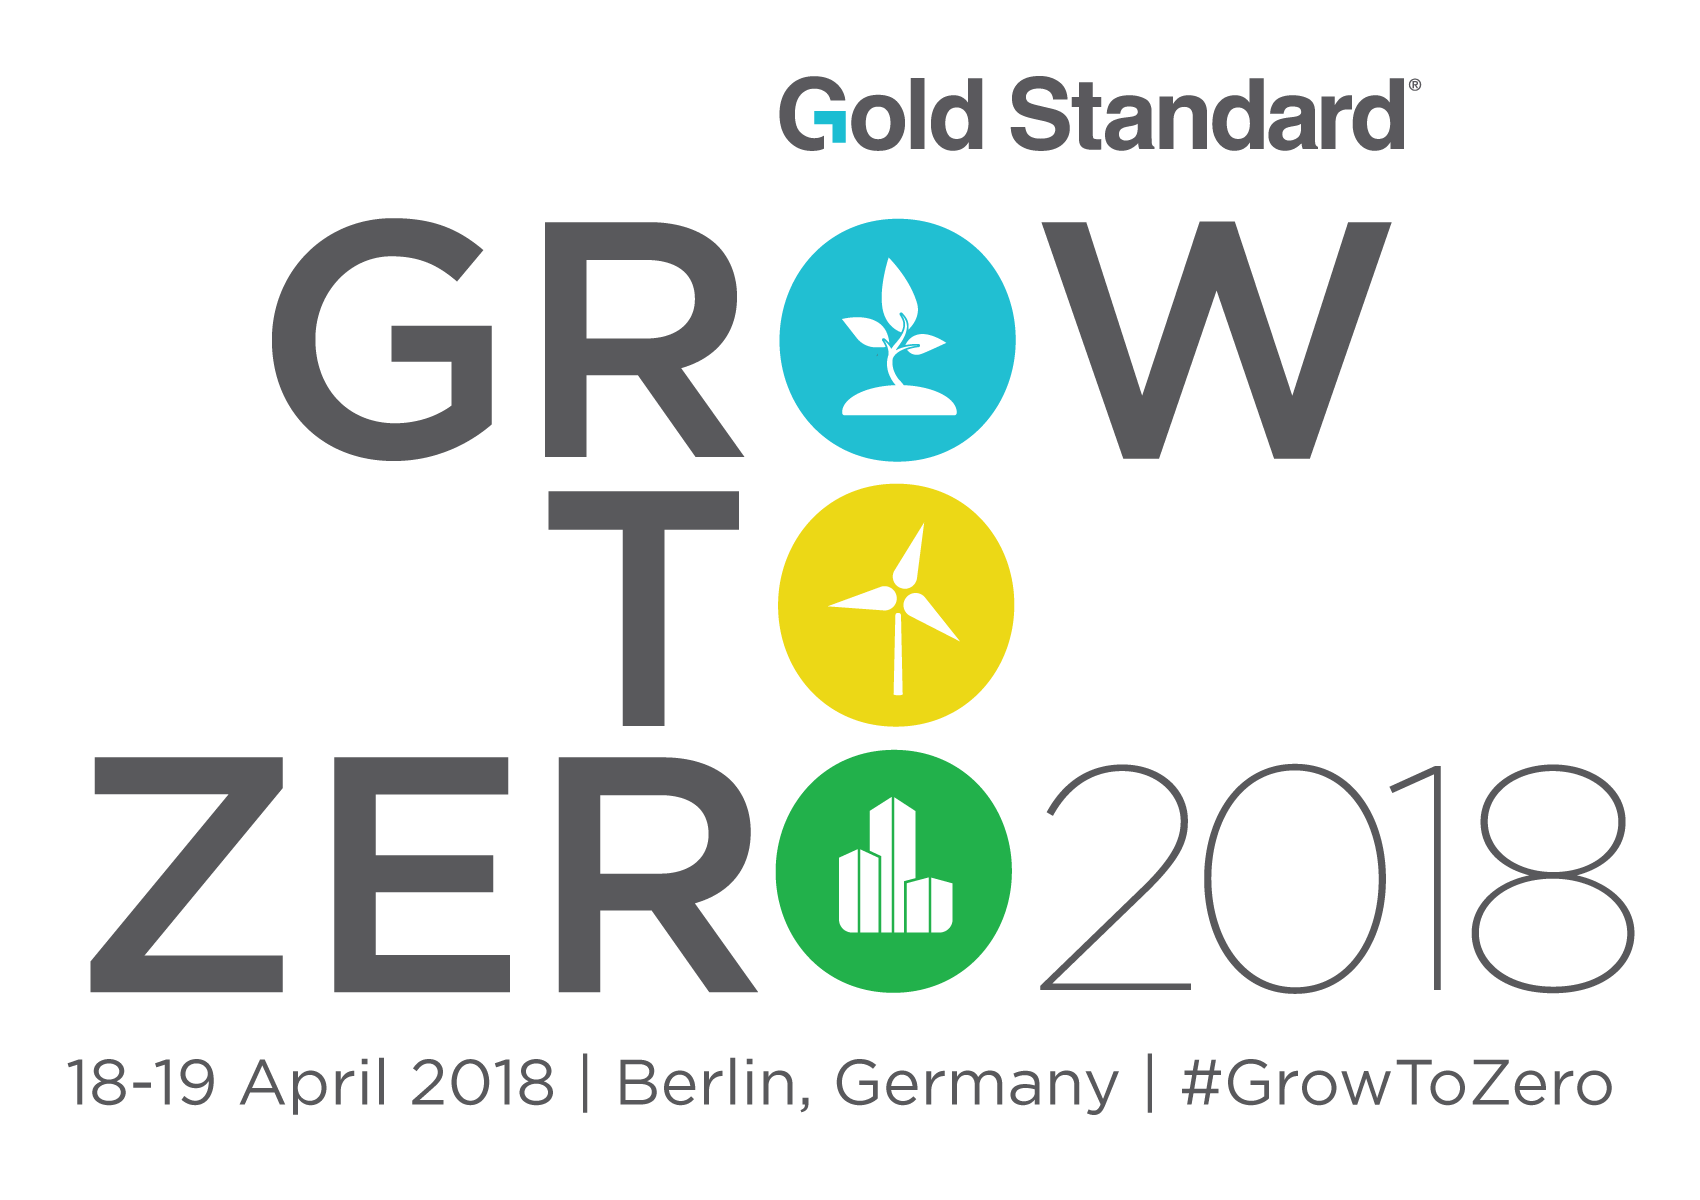 Gold Standard Grow to Zero conference!